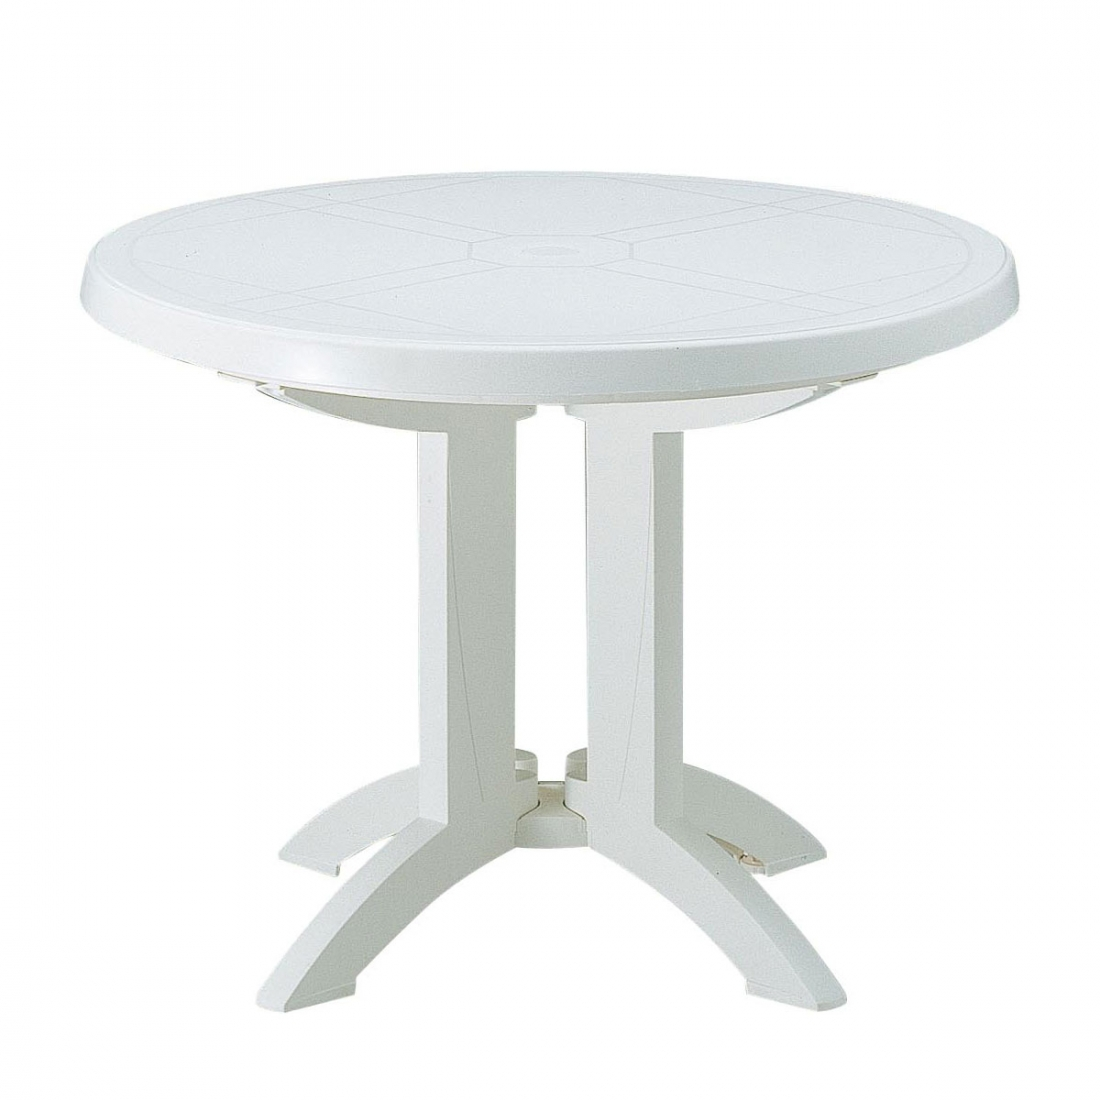 Table ronde de jardin vega grosfillex for Table exterieur ronde